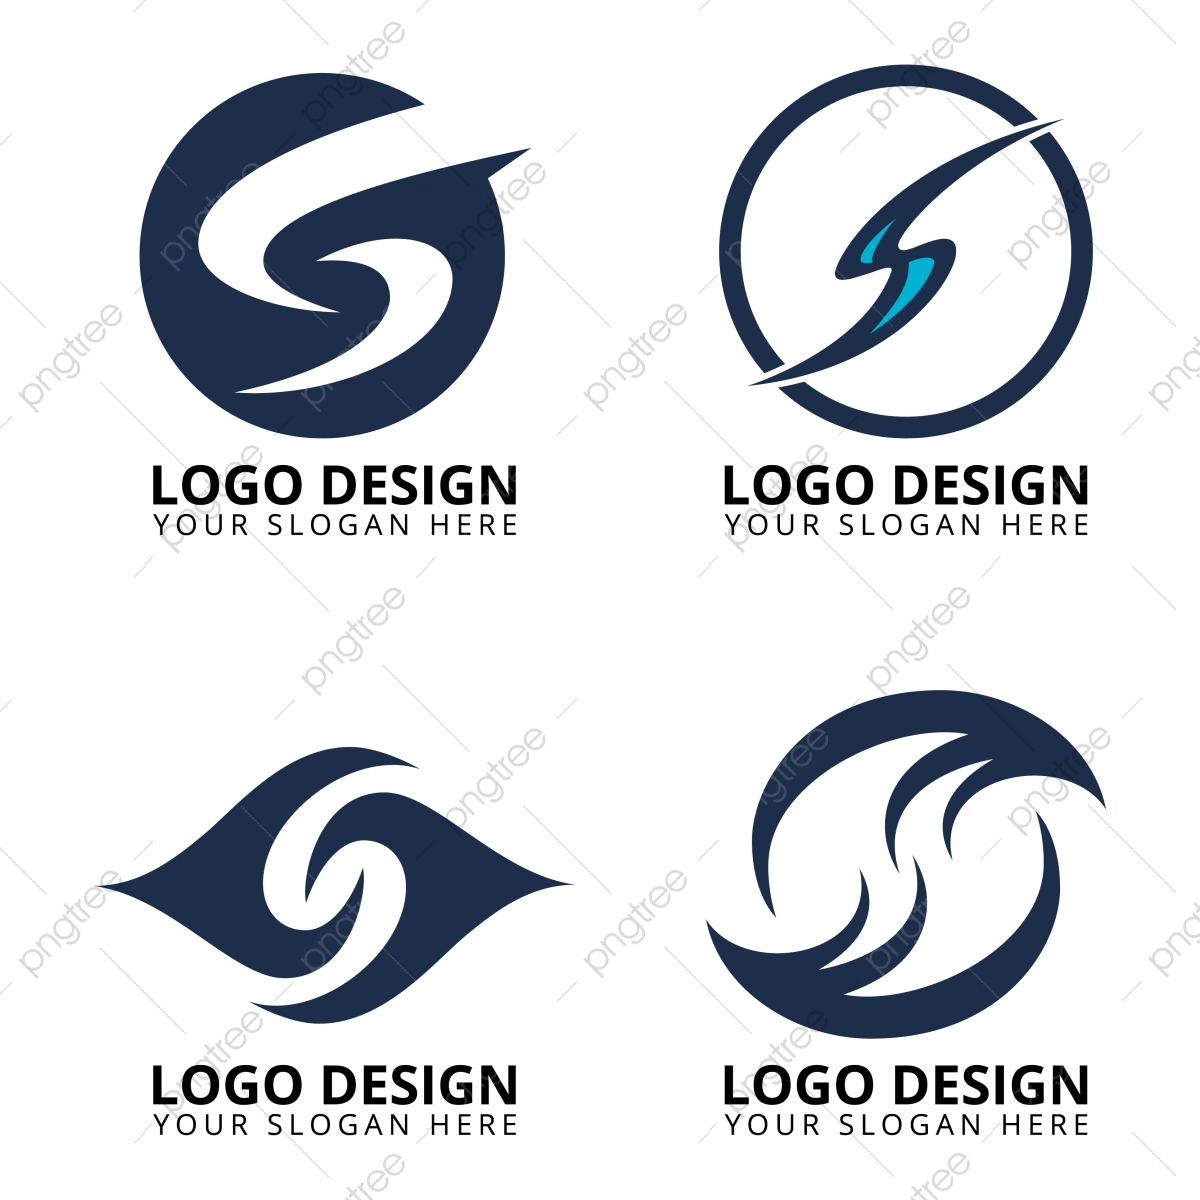 Letter S Logo Png Vector Psd And Clipart With Transparent Background For Free Download Pngtree